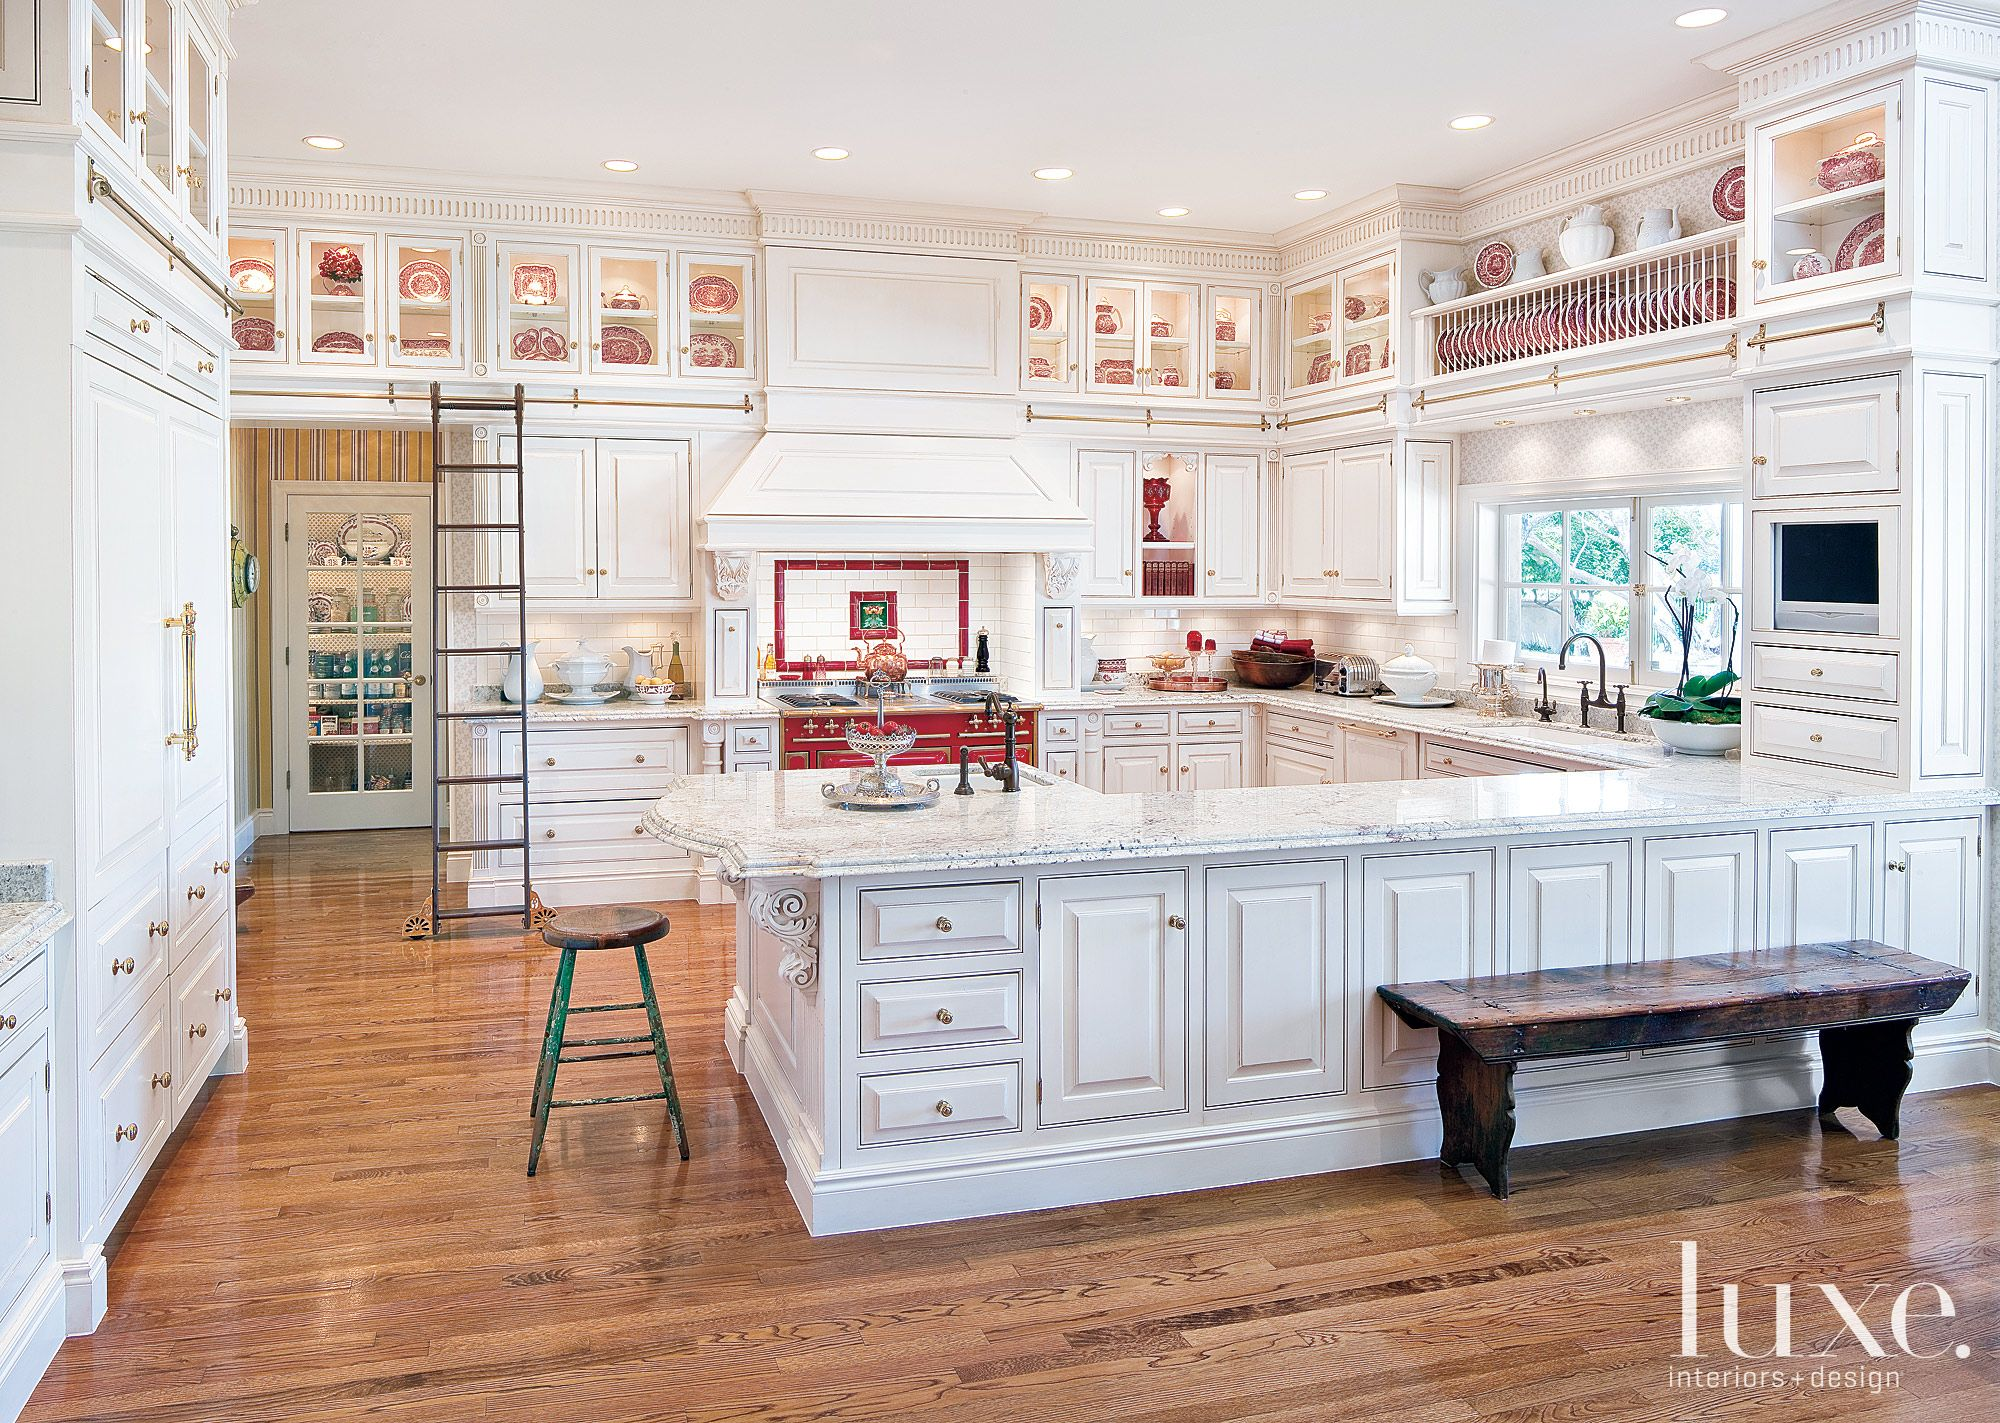 Traditional White Kitchen with English Manor-Style Cabinetry